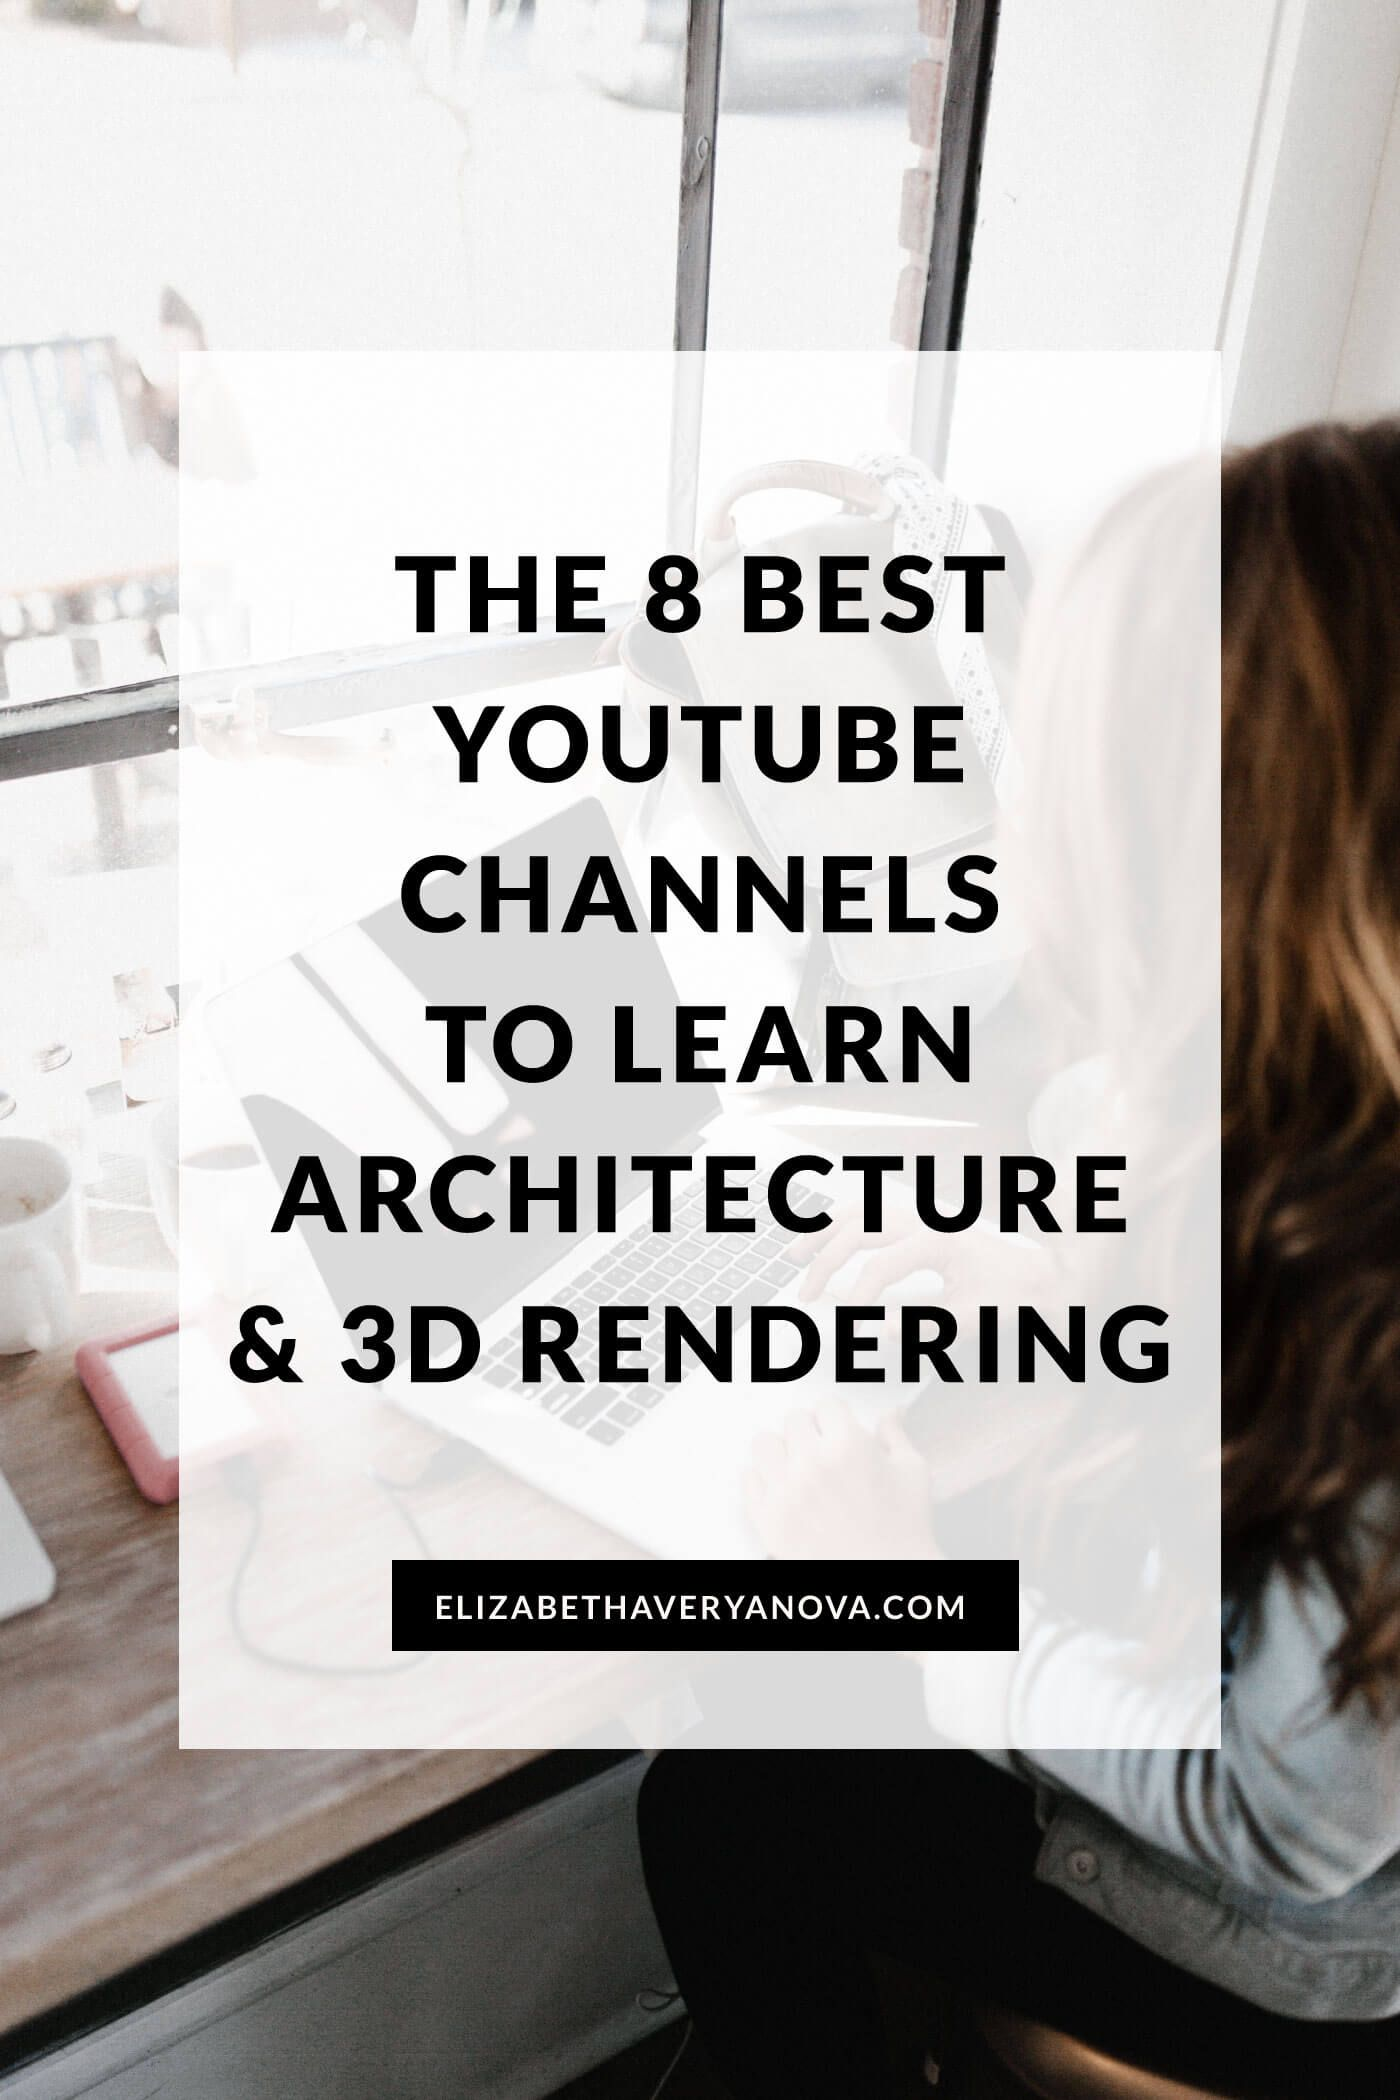 The 8 Best YouTube Channels to Learn Architecture and 3D Rendering